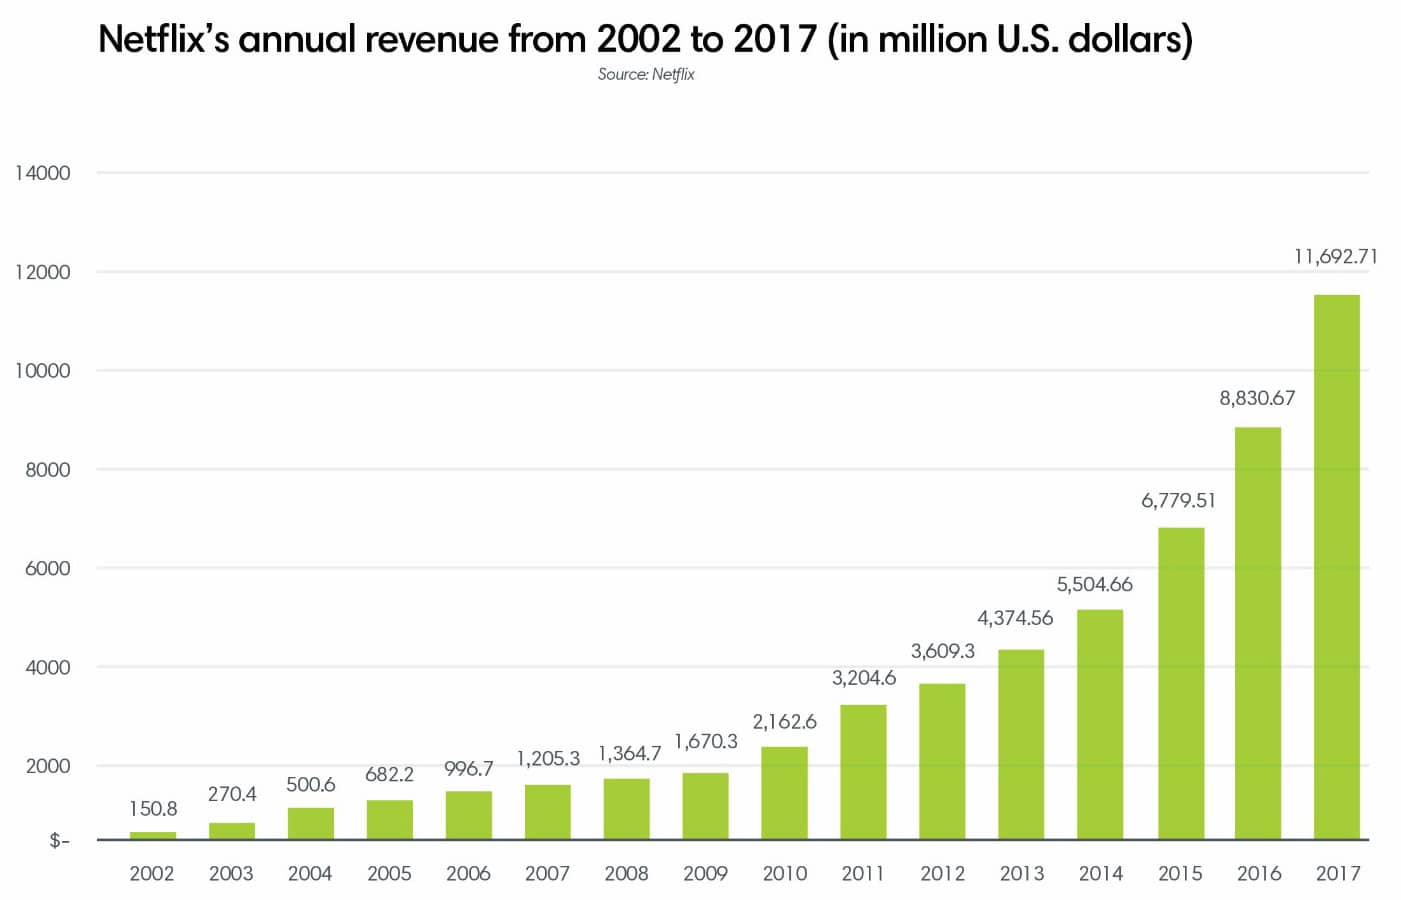 Netflix's annual revenue from 2002 to 2017